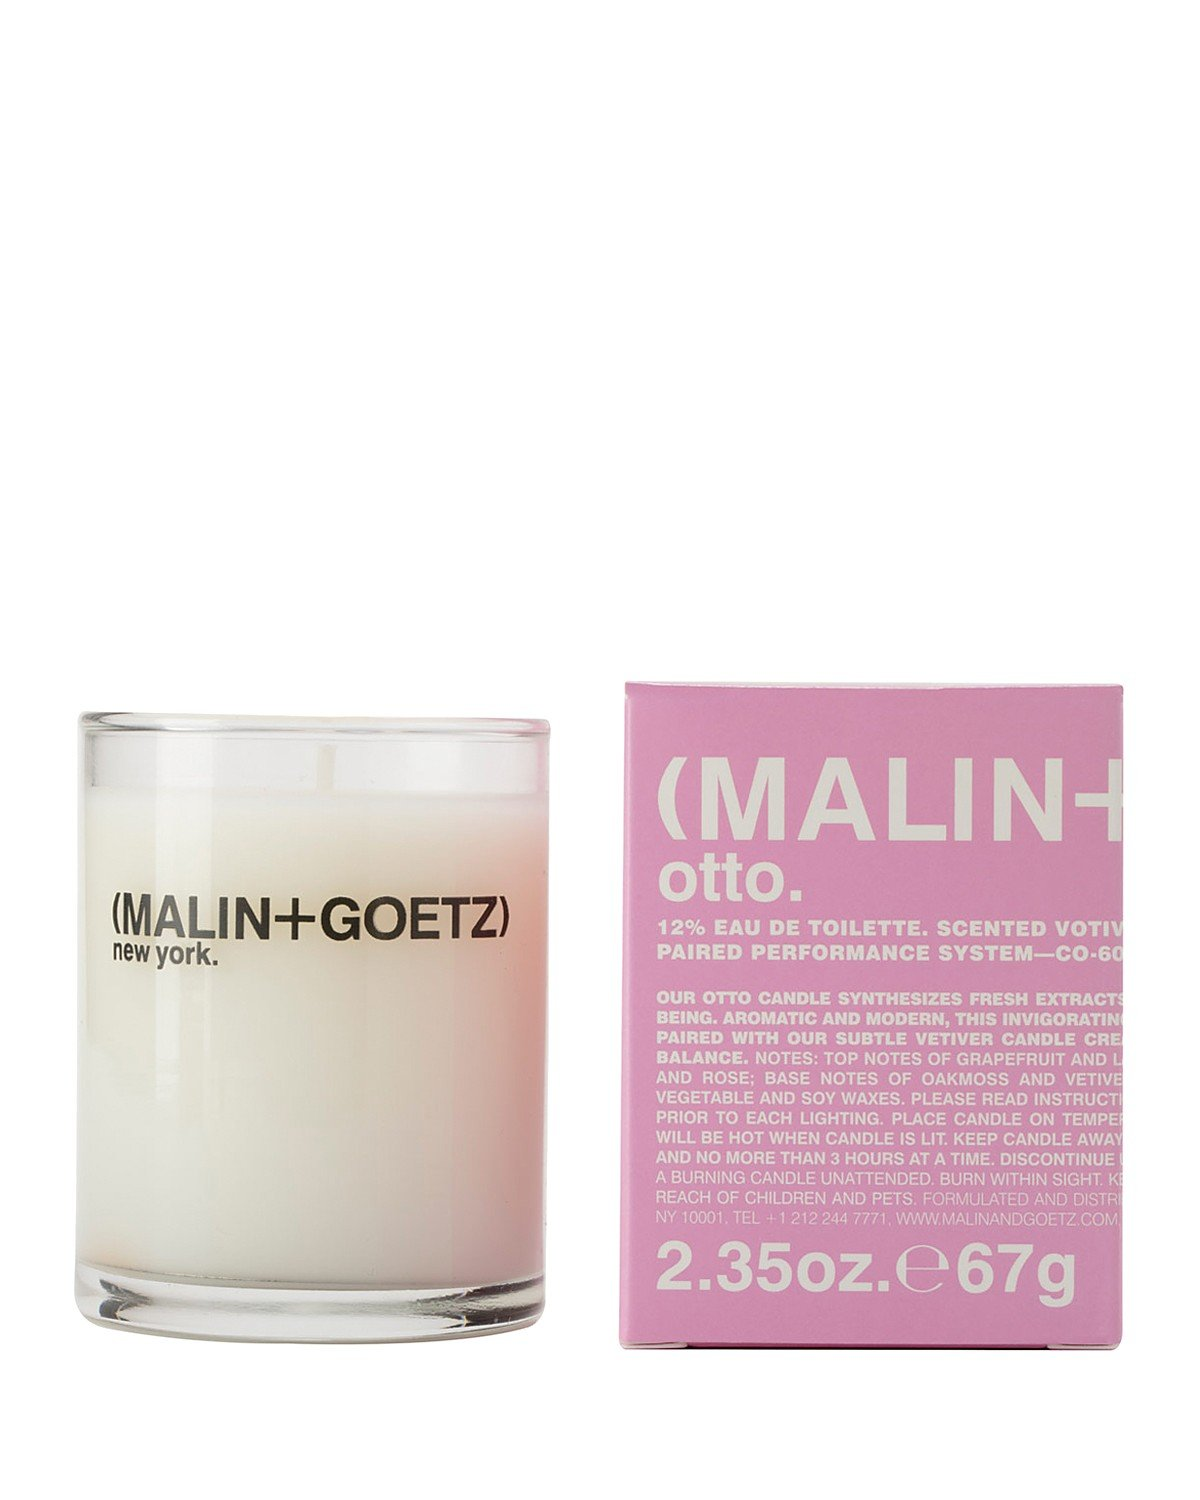 M MALIN and GOETZ Otto Votive Candle 2.35oz (Pack of 2)